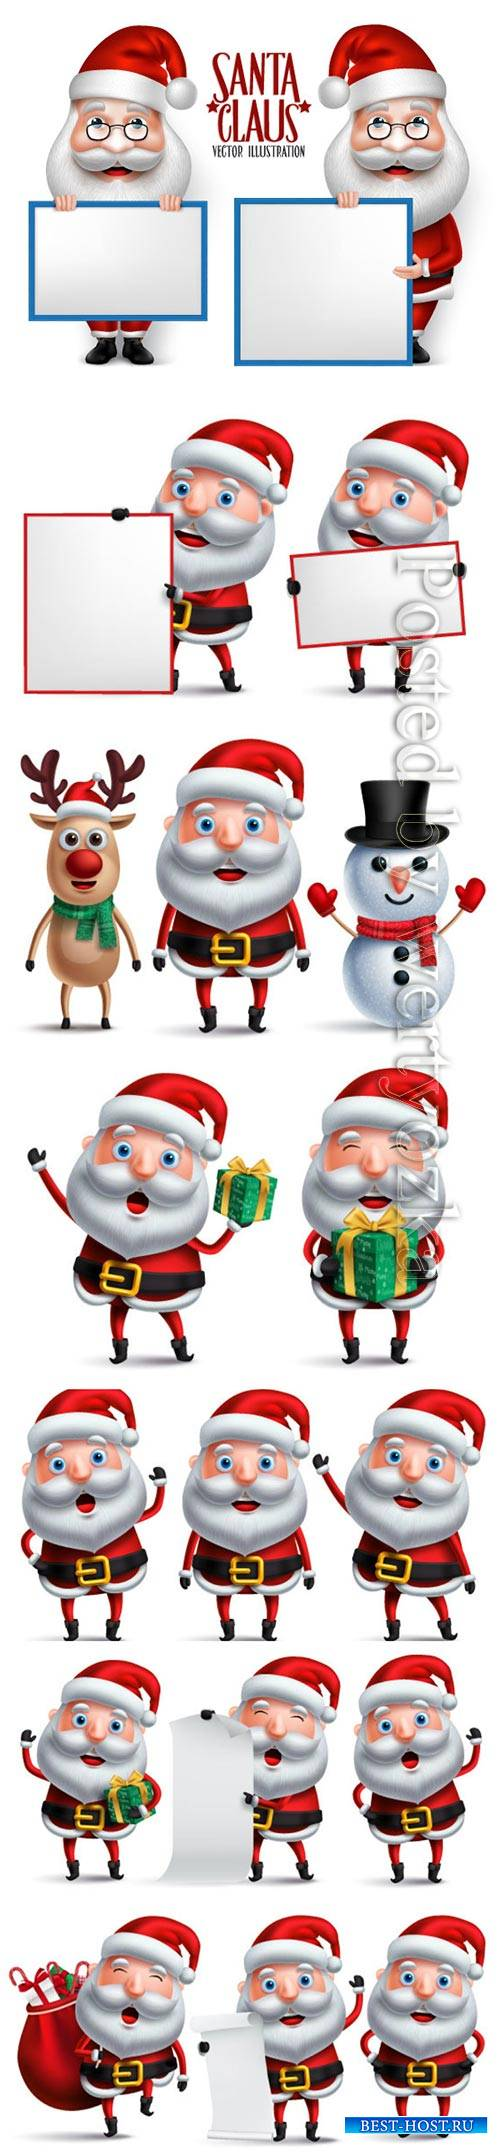 Santa claus christmas character set